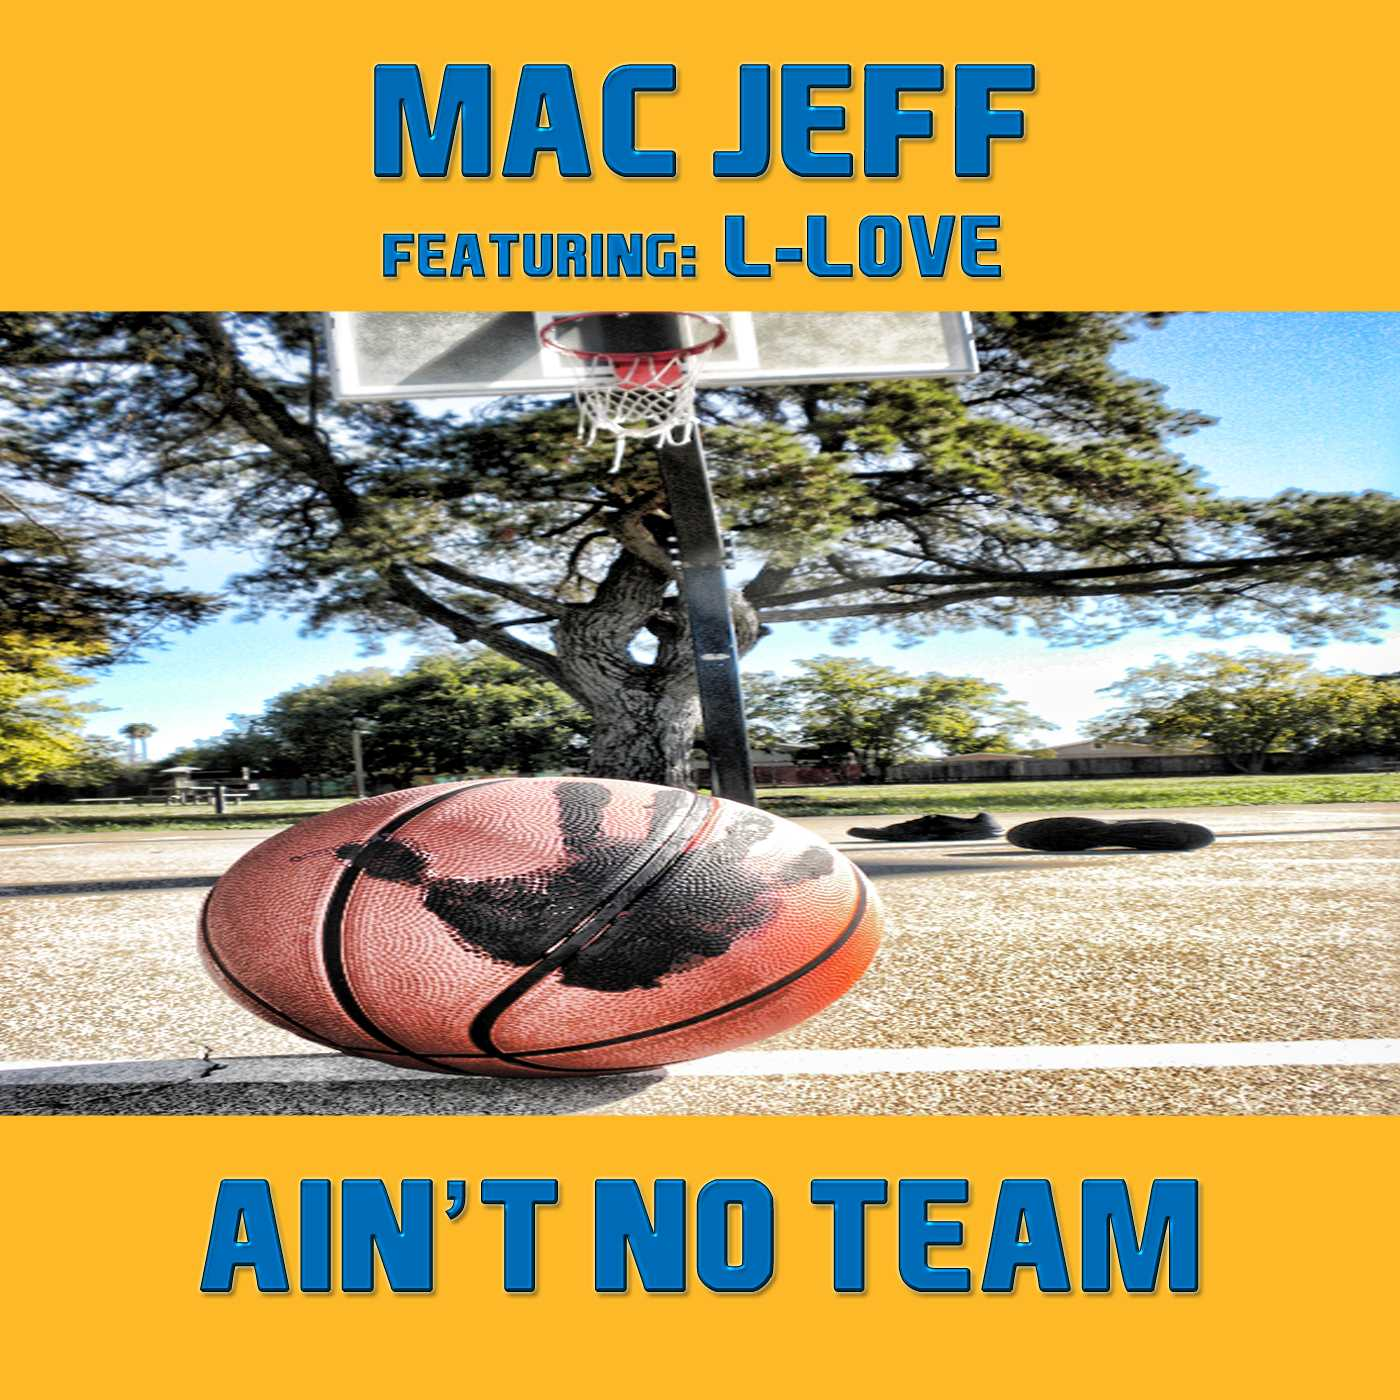 c34f855f5cb Northern California emcee Mac Jeff is back with a brand new single